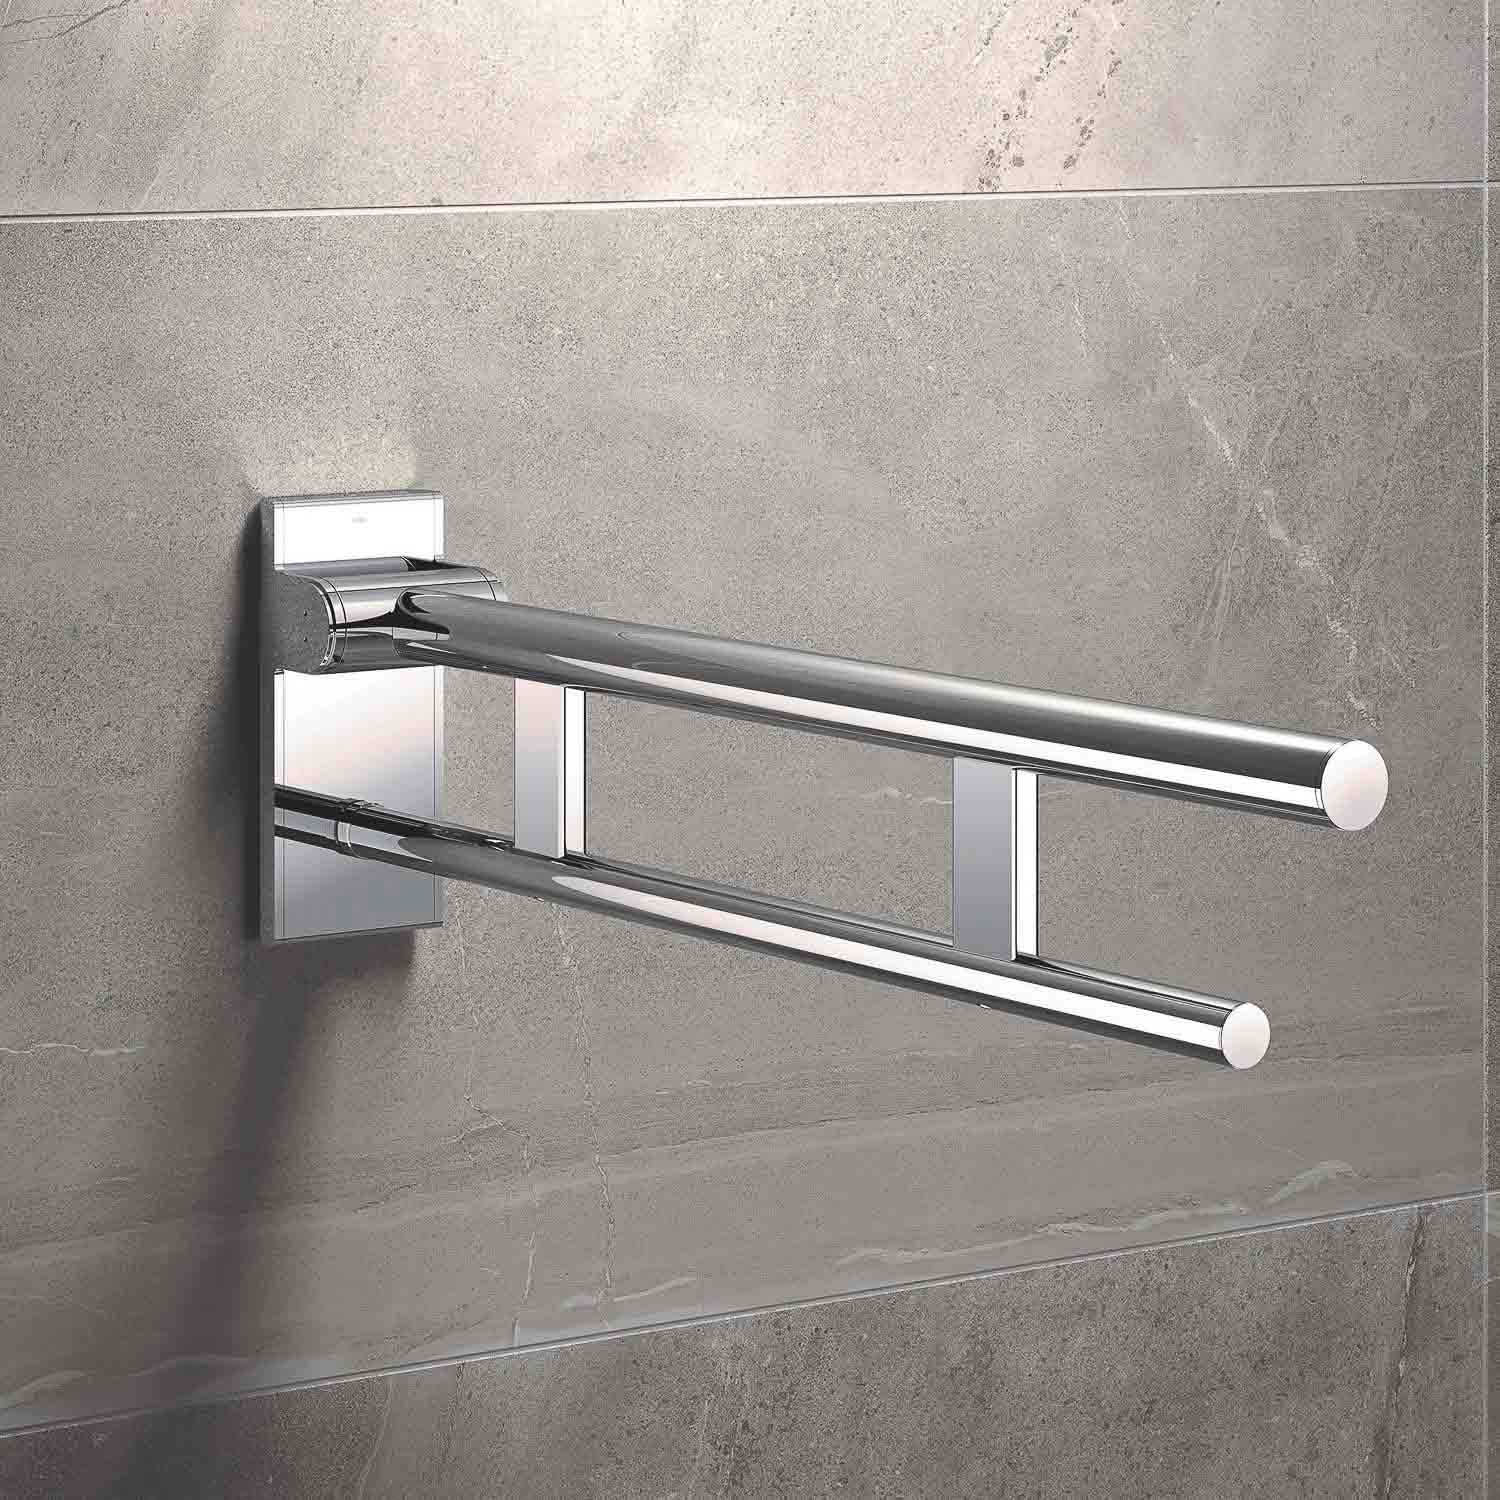 600mm Freestyle Hinged Grab Rail with a chrome finish lifestyle image